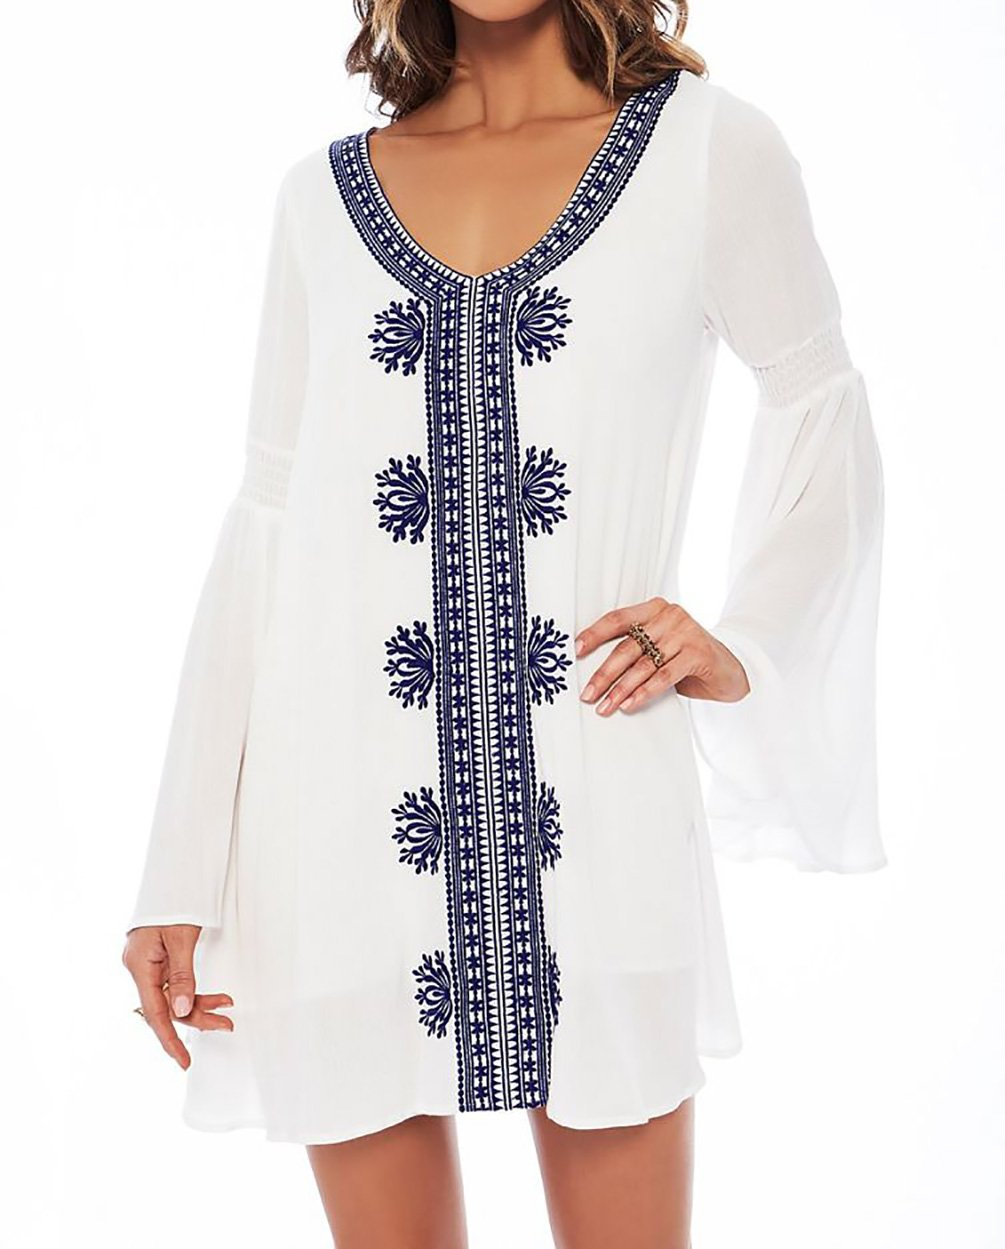 Bestyou Women's Embroideried Swimsuit Cover up Tunic Shirts Beachwear  (White F)